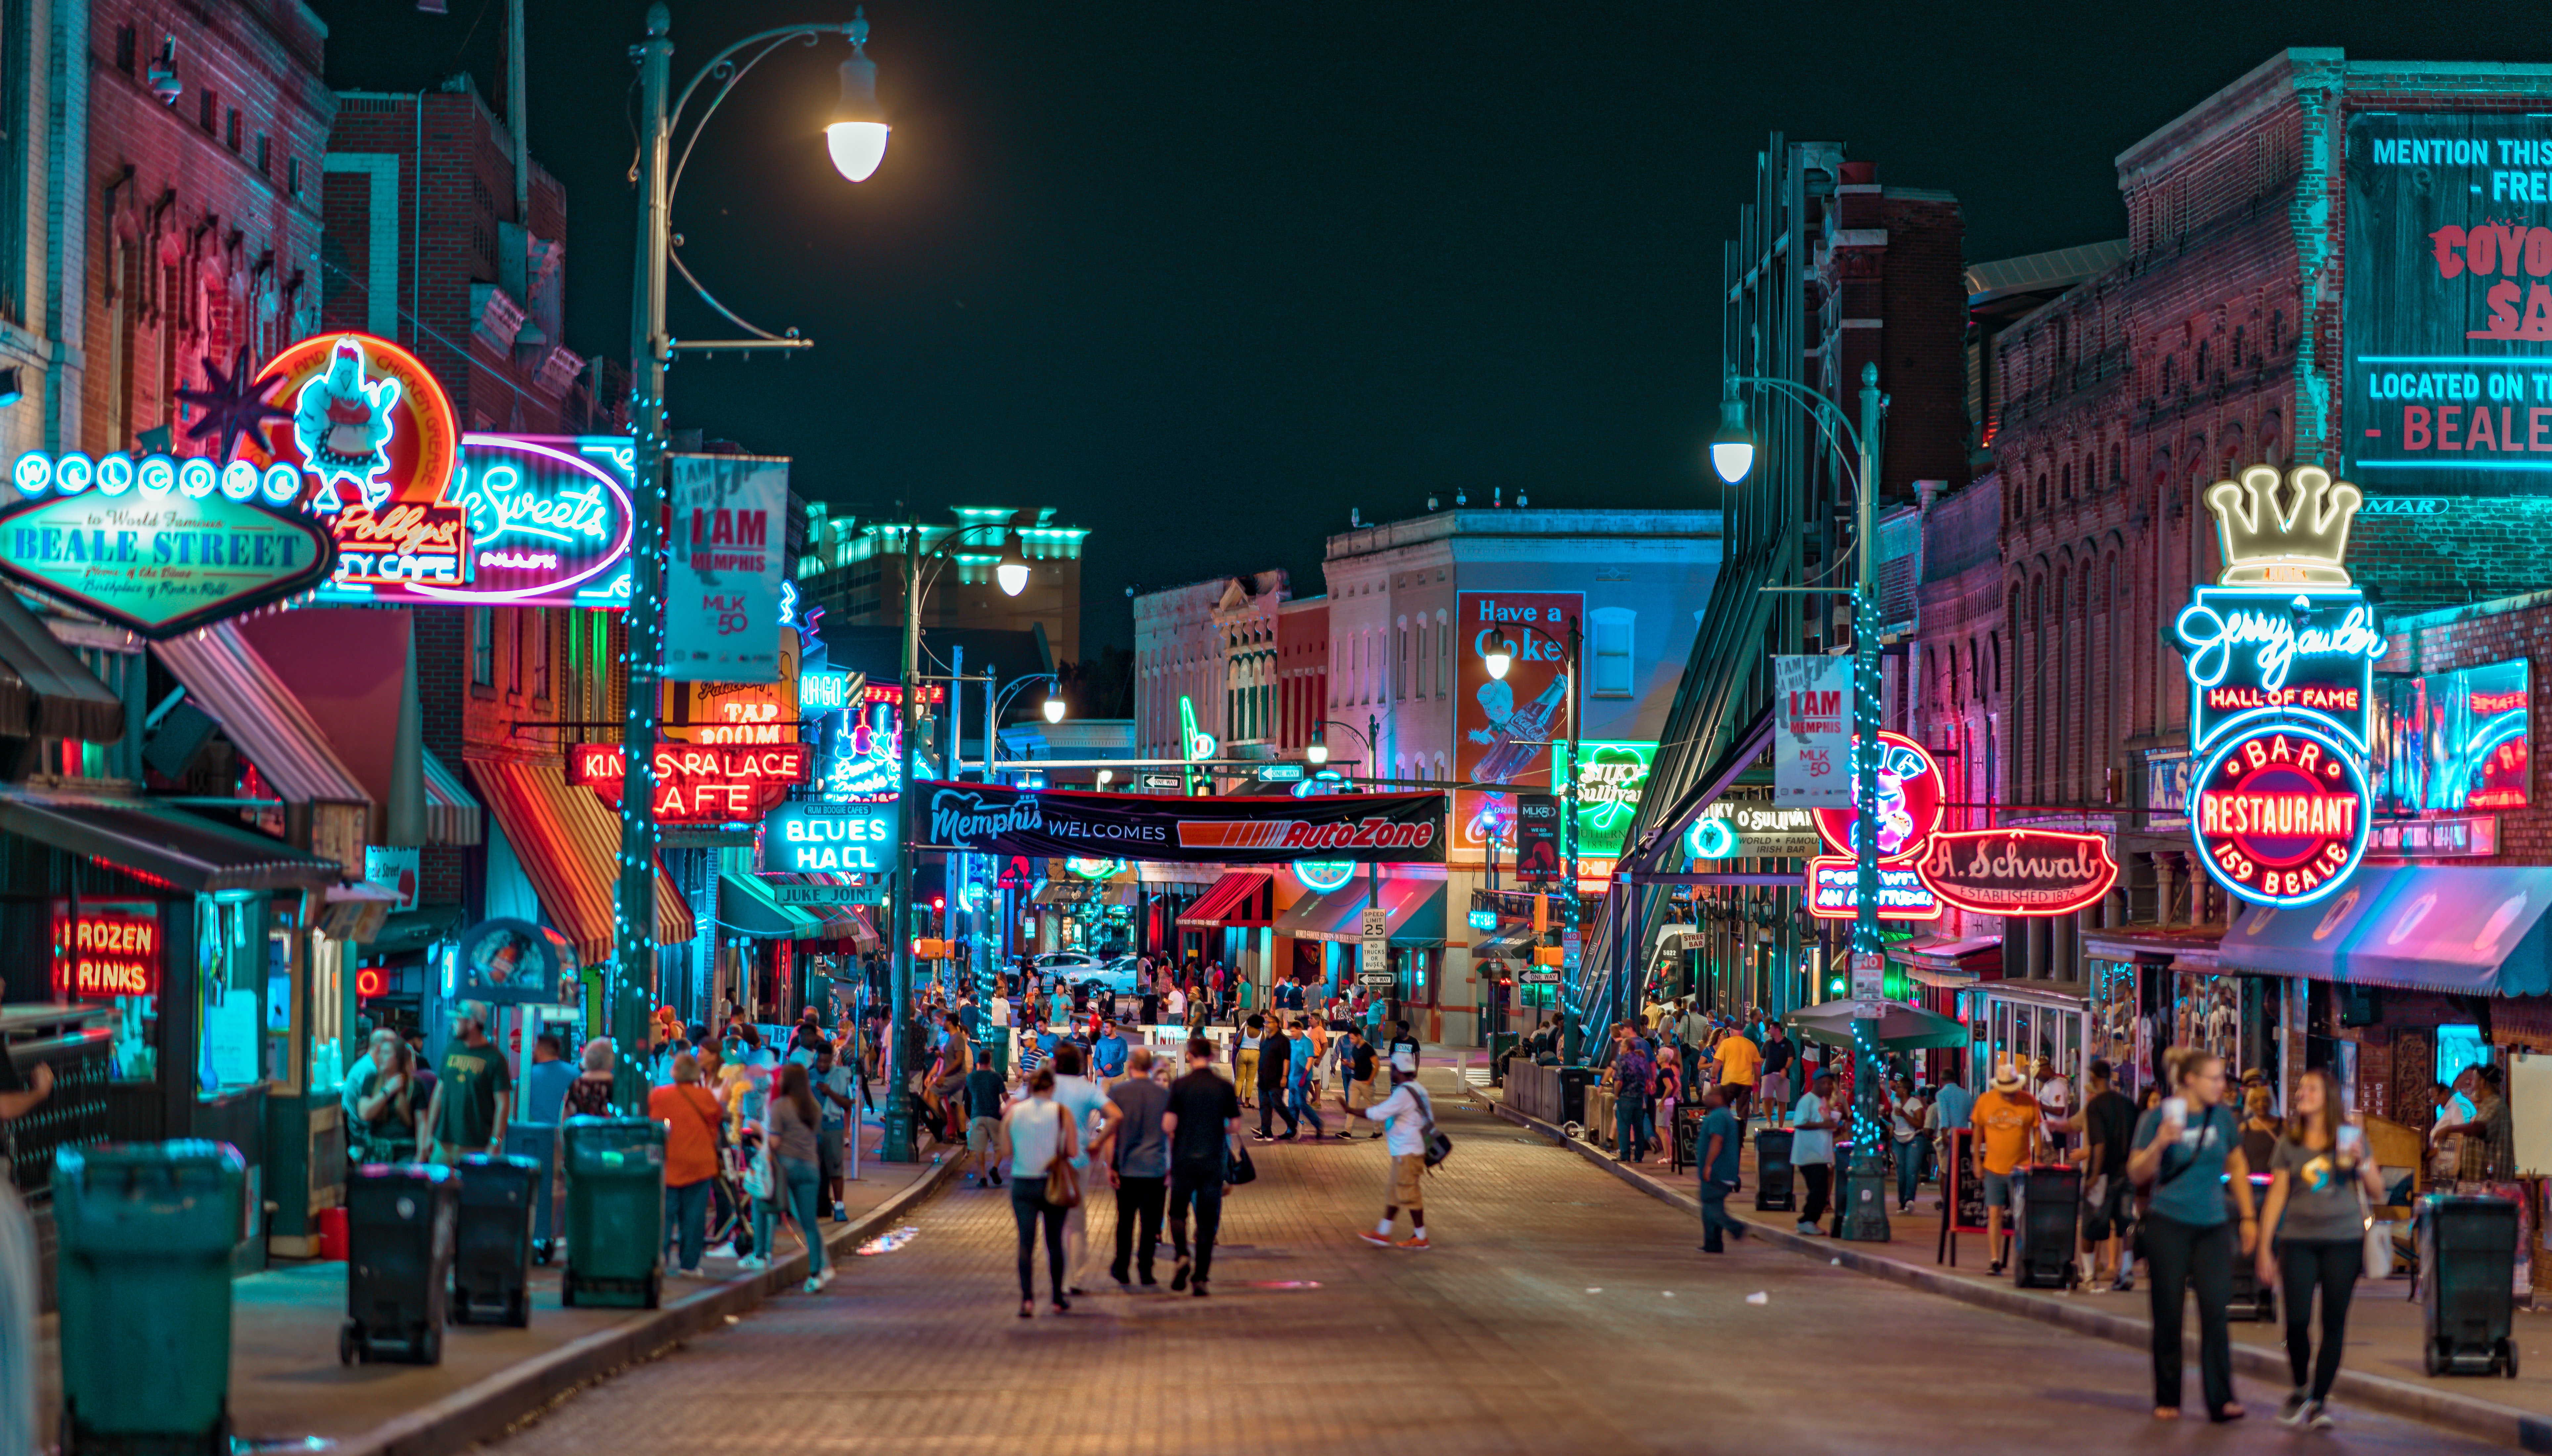 15 Things to do in Memphis, Tennessee